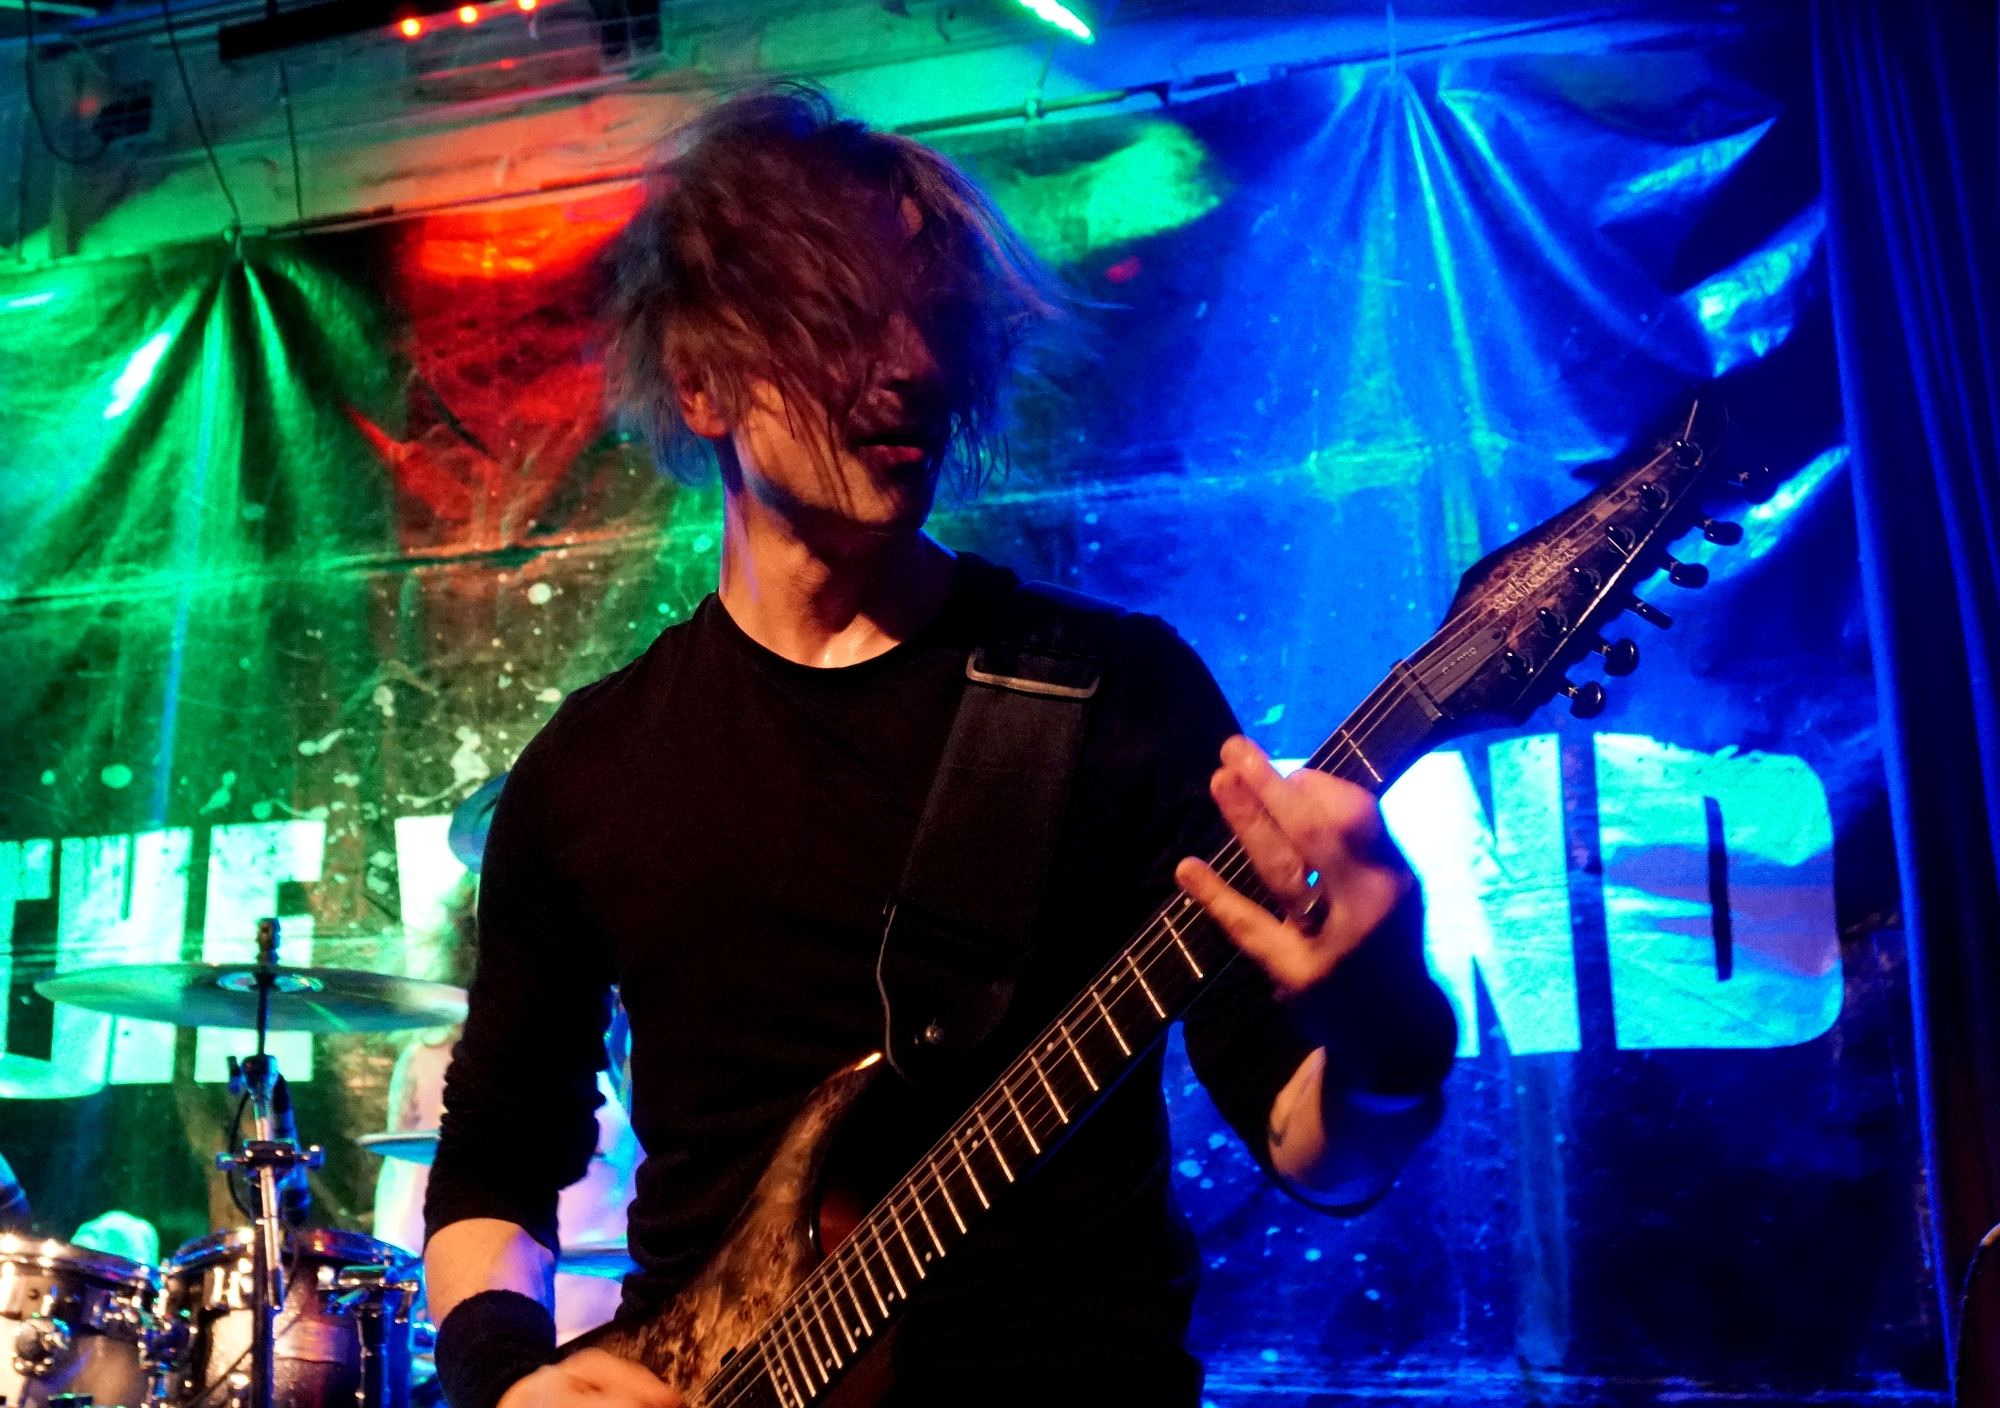 The-Very-End-live-Kulturrampe-Krefeld-2019-04